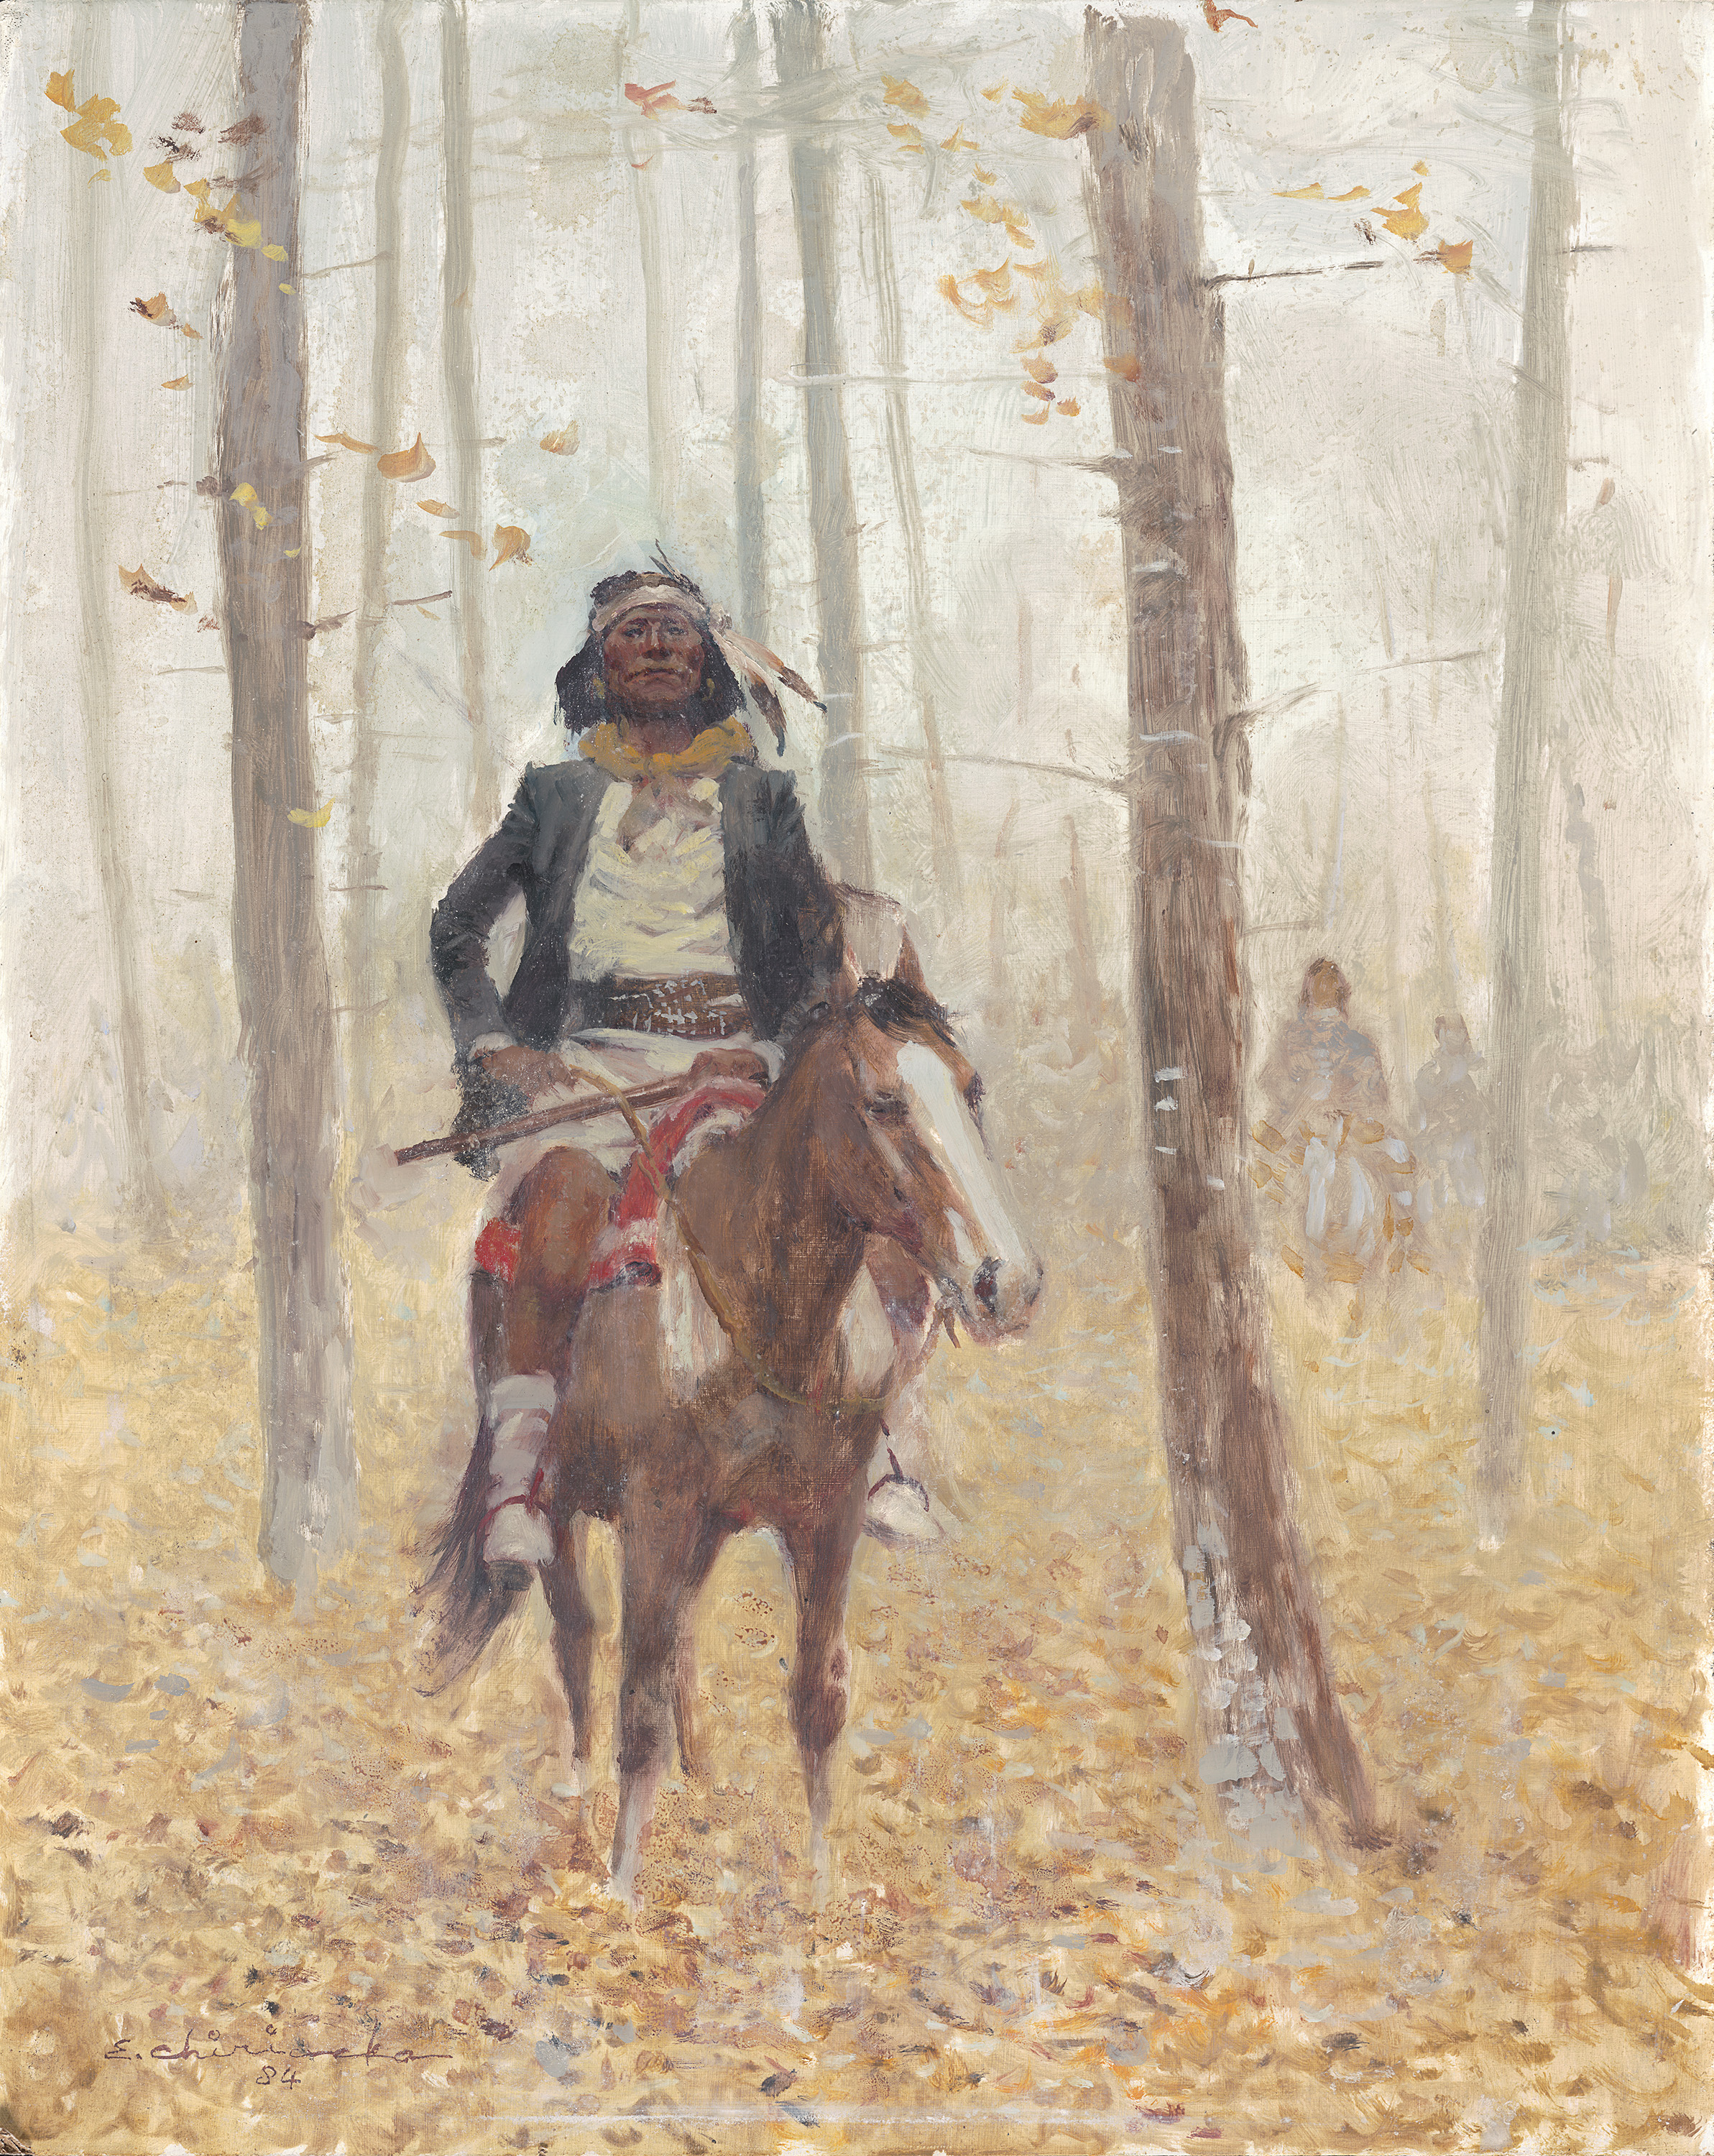 Geronimo at Rest